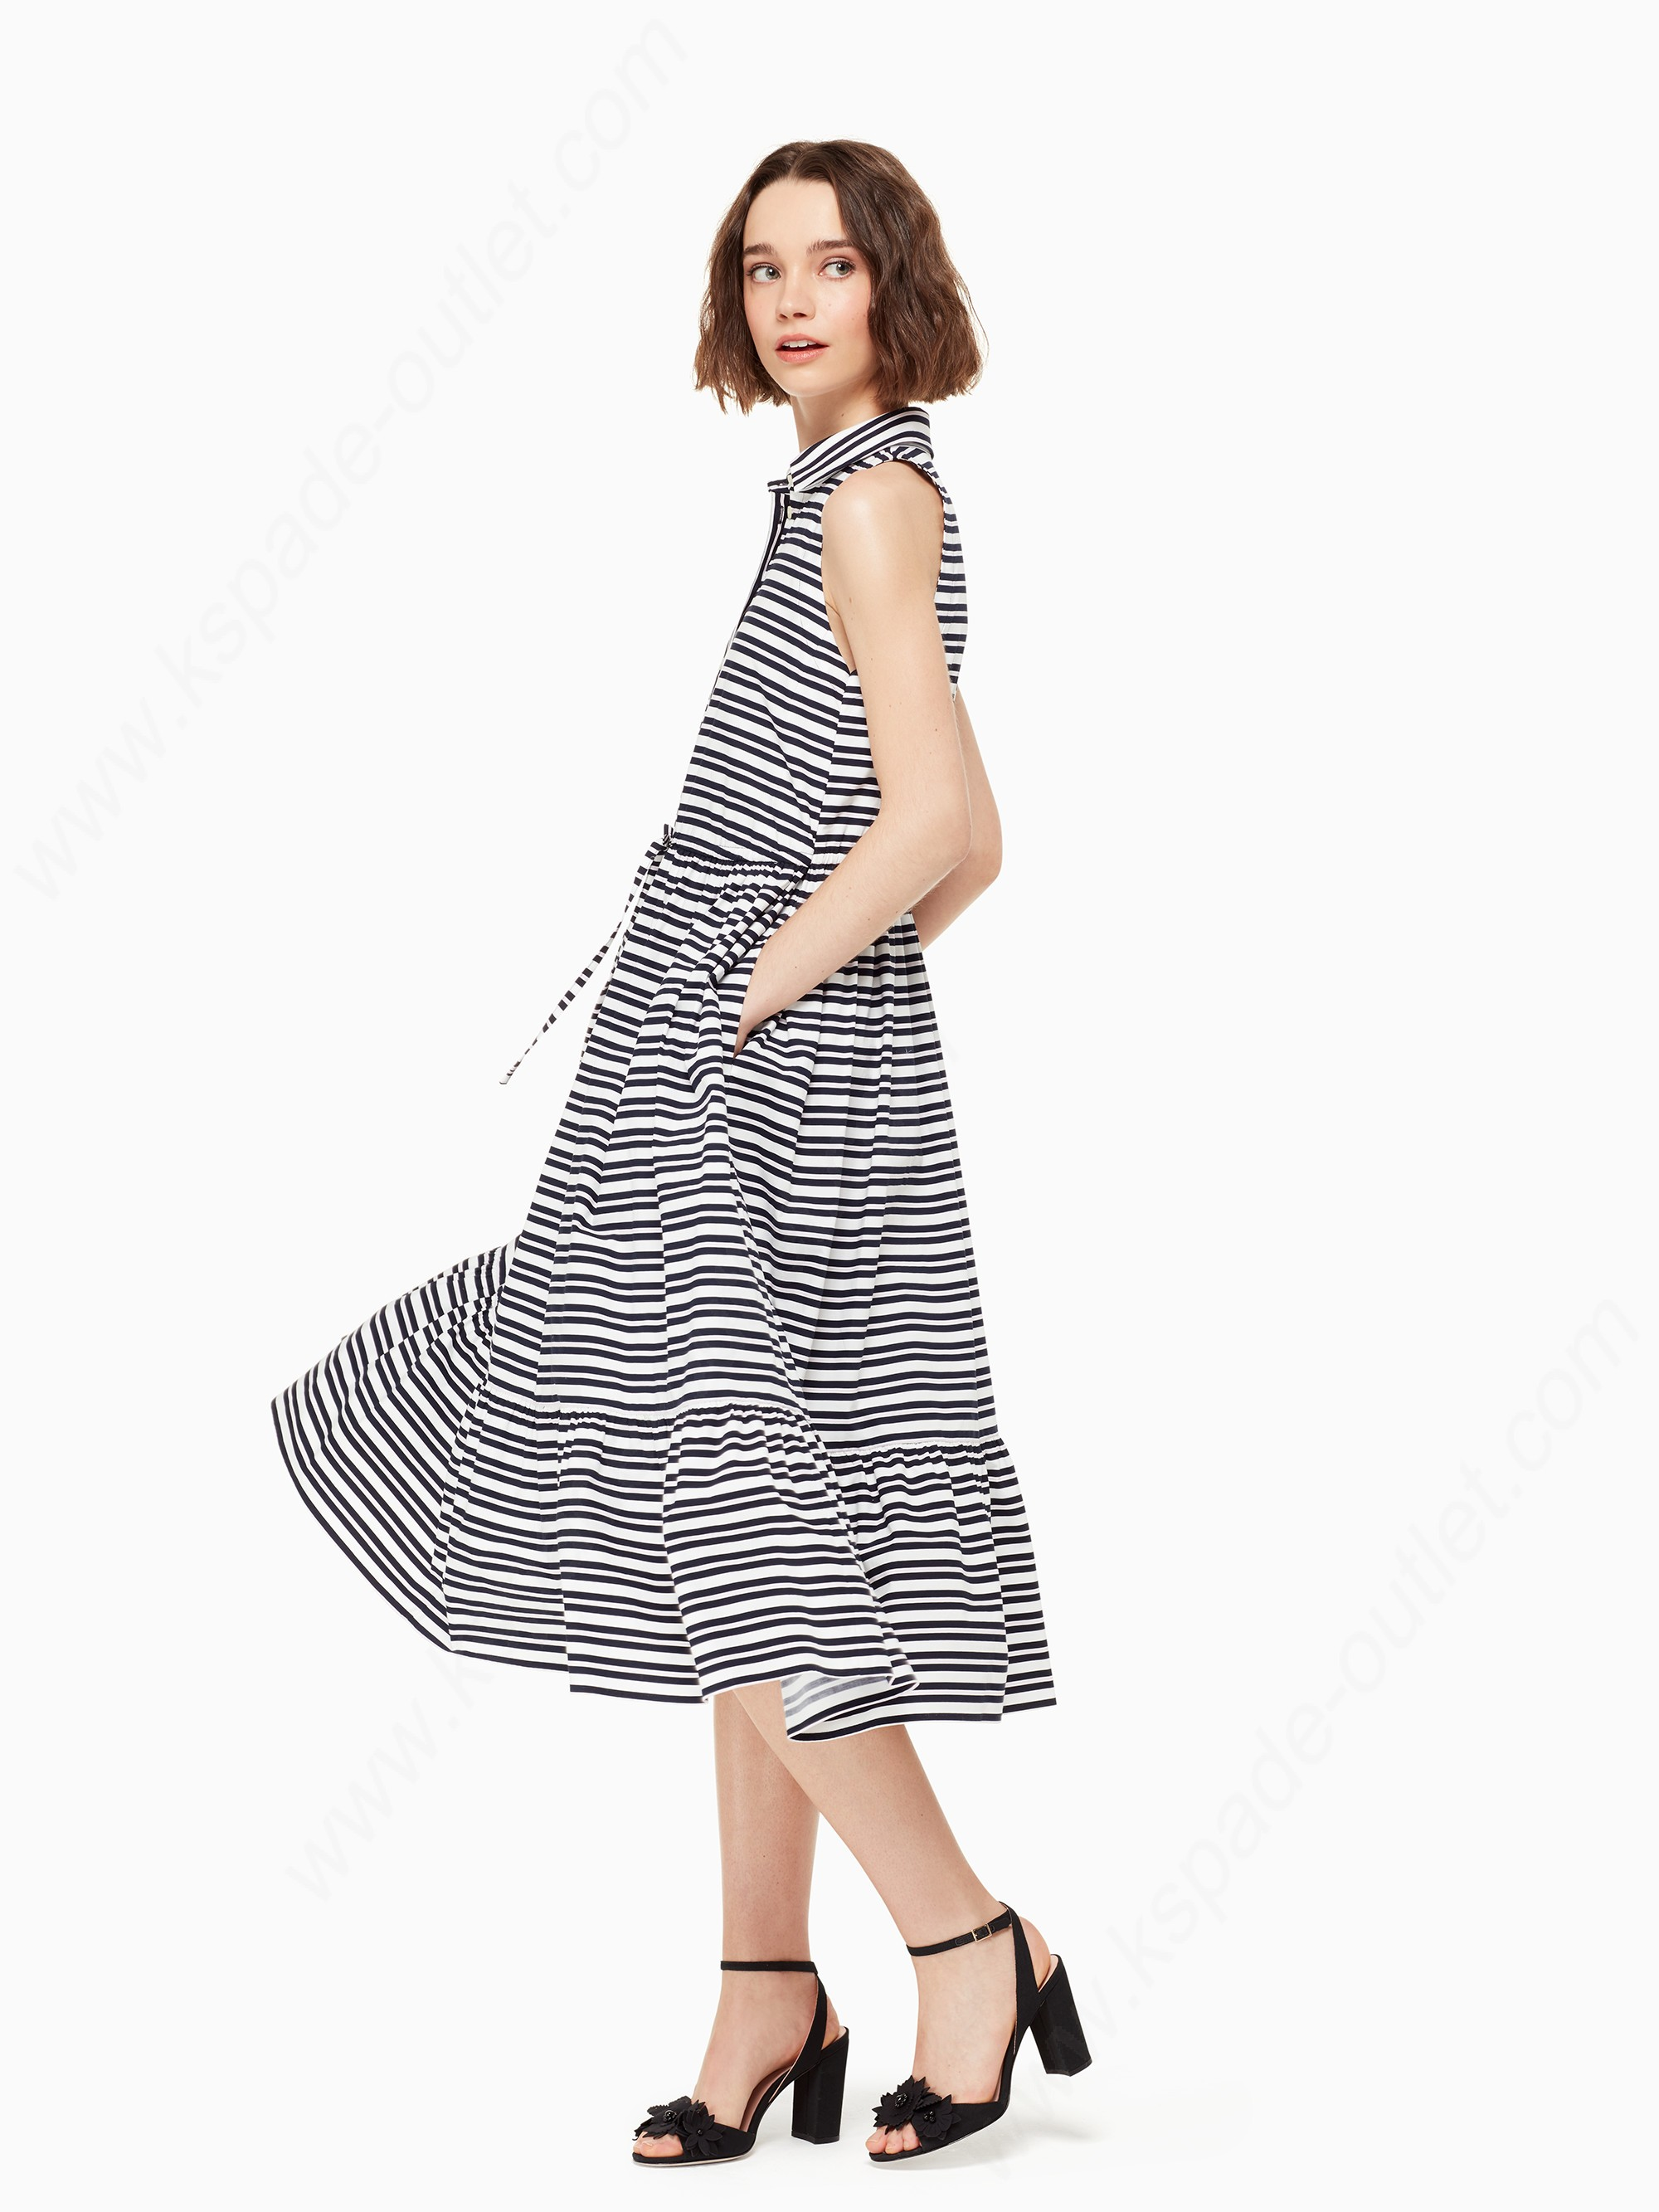 Kate Spade Womens Clothing Candy Stripe Shirtdress - Kate Spade Womens Clothing Candy Stripe Shirtdress